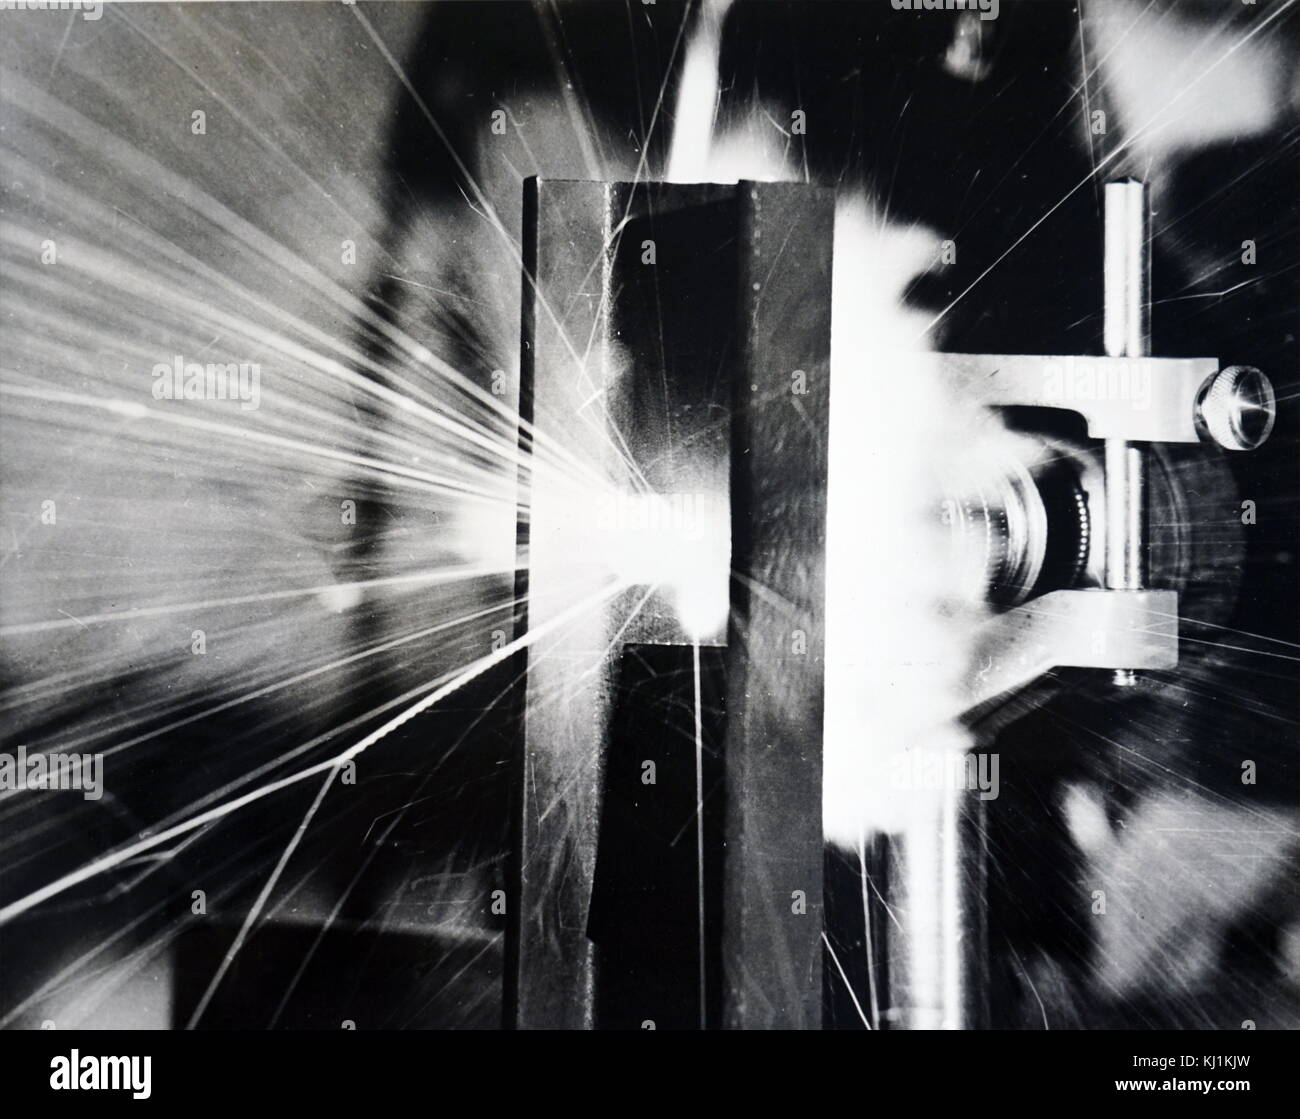 Photograph of a scientist testing a 'closed-circuit' laser that appears to be superior to a gyroscope for - Stock Image